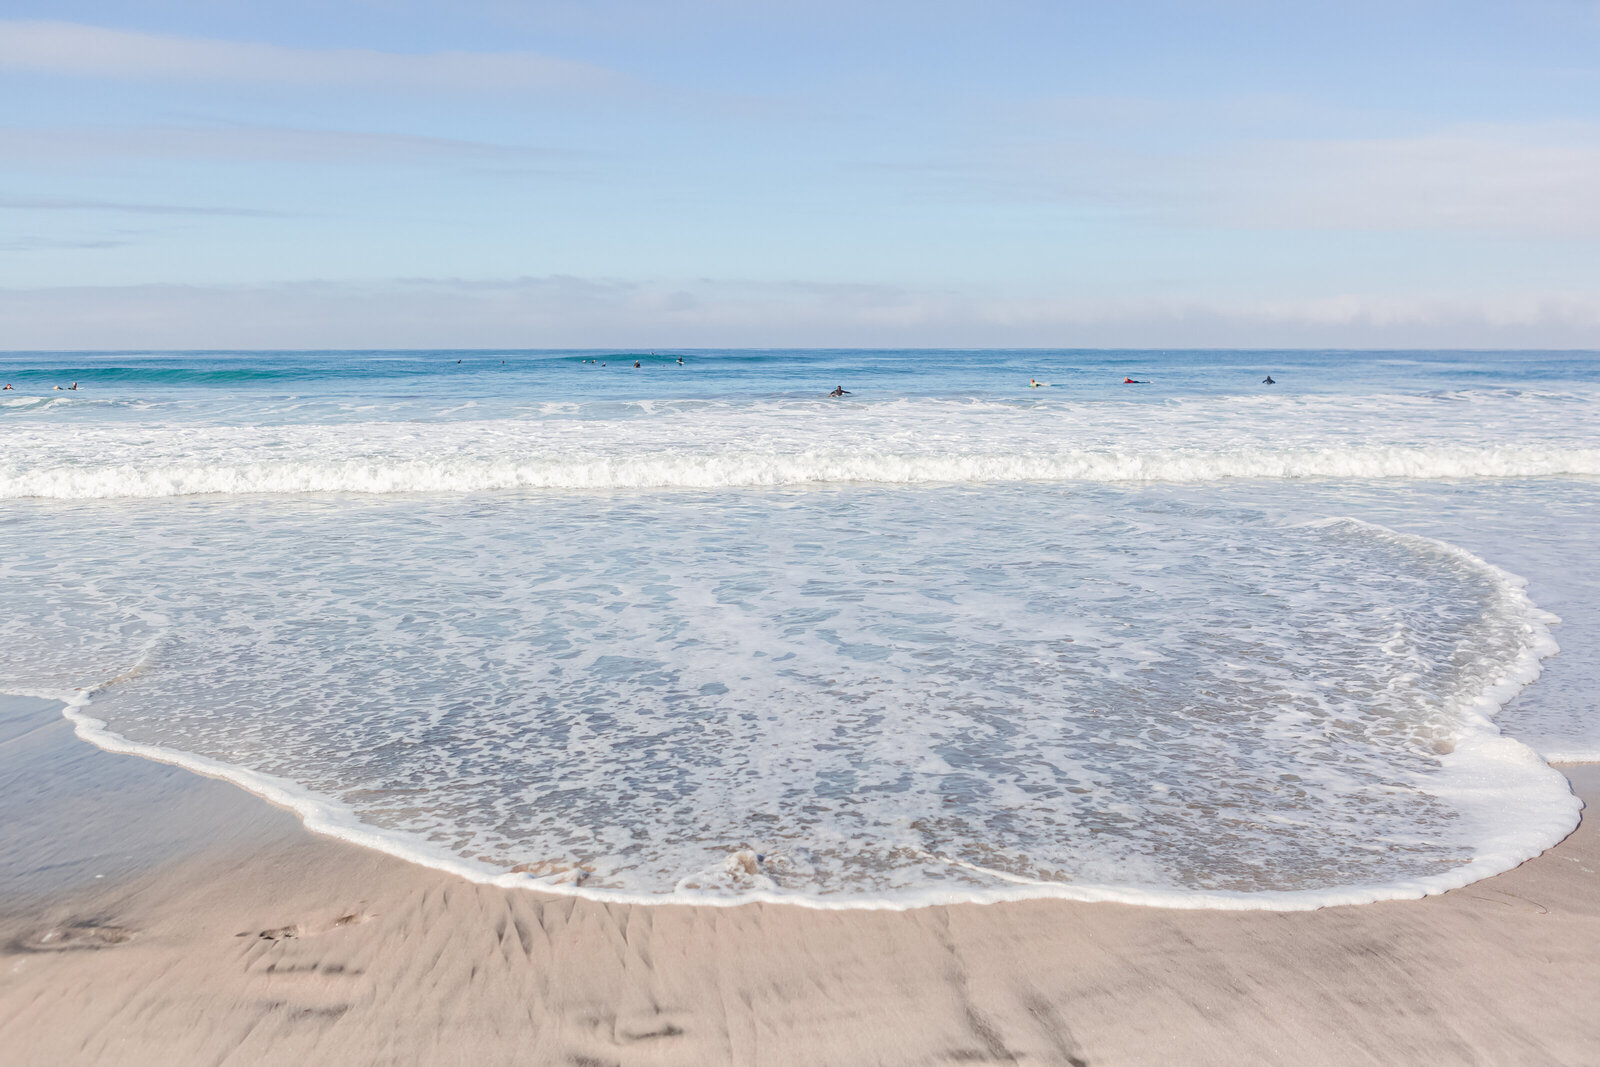 007-KBP-California-Beach-Ocean